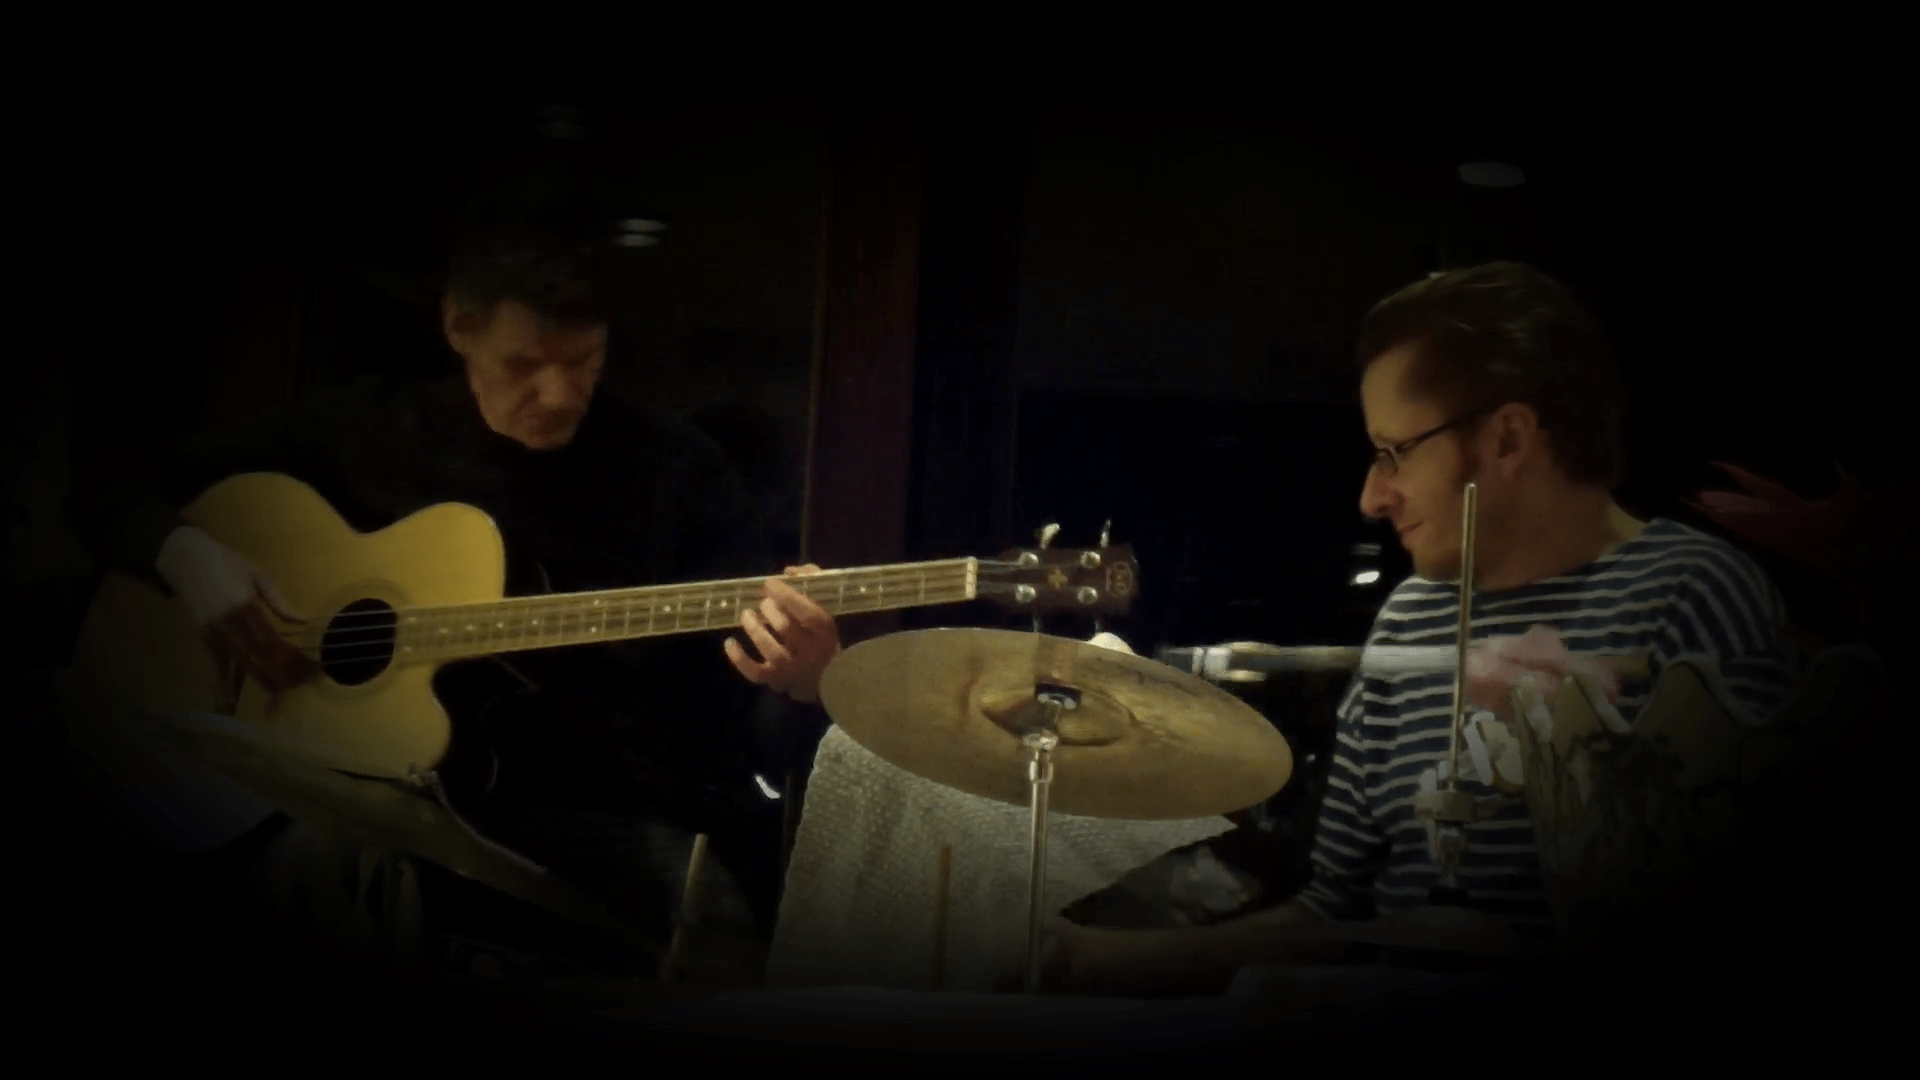 Thomas Blank: Drums, Peter Paulsen: Acoustic Bass Guitar